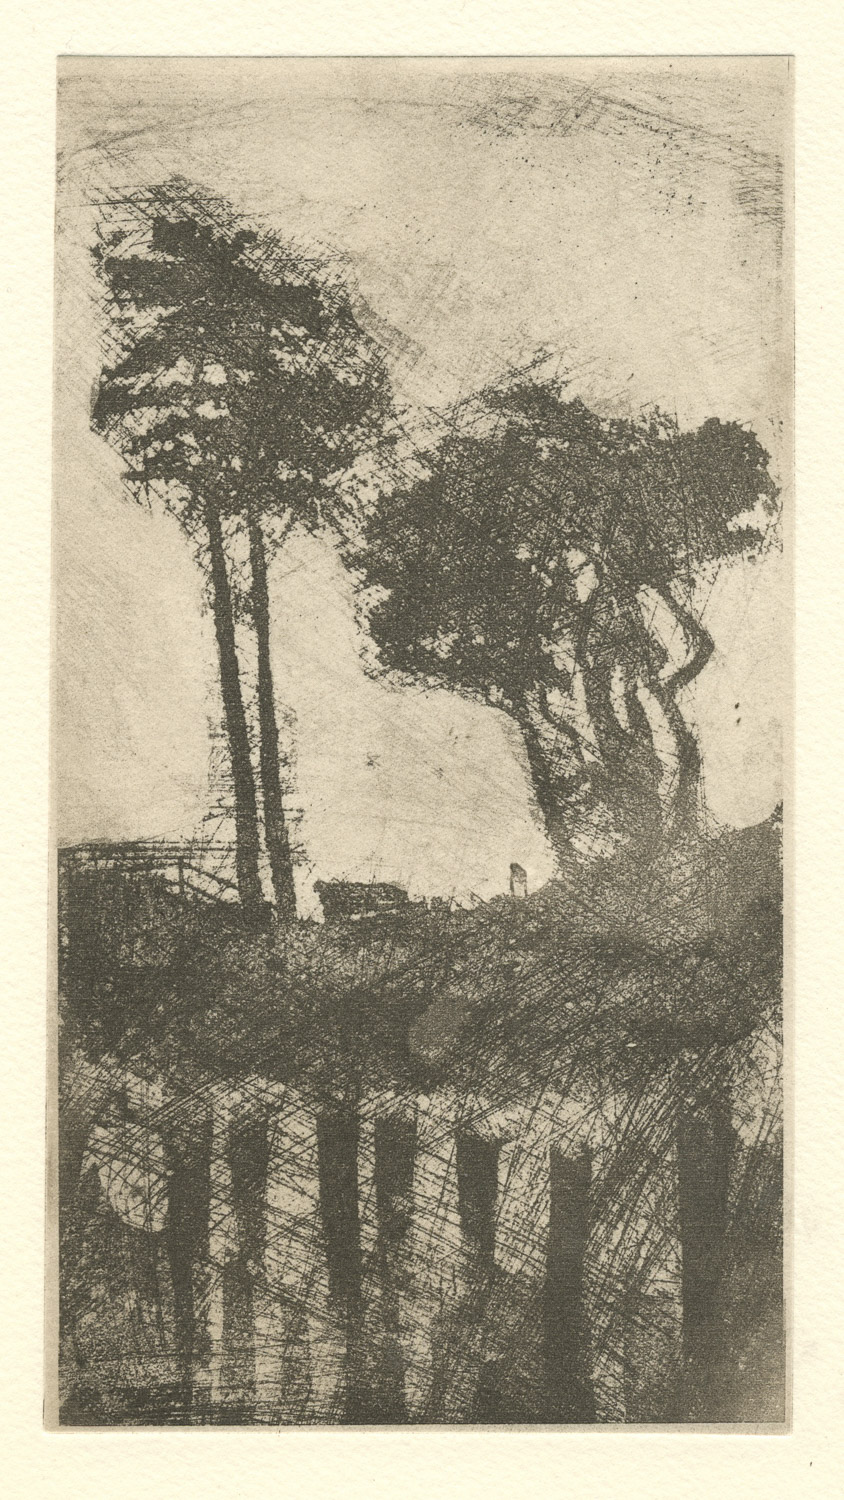 Look_out_calshot-etching